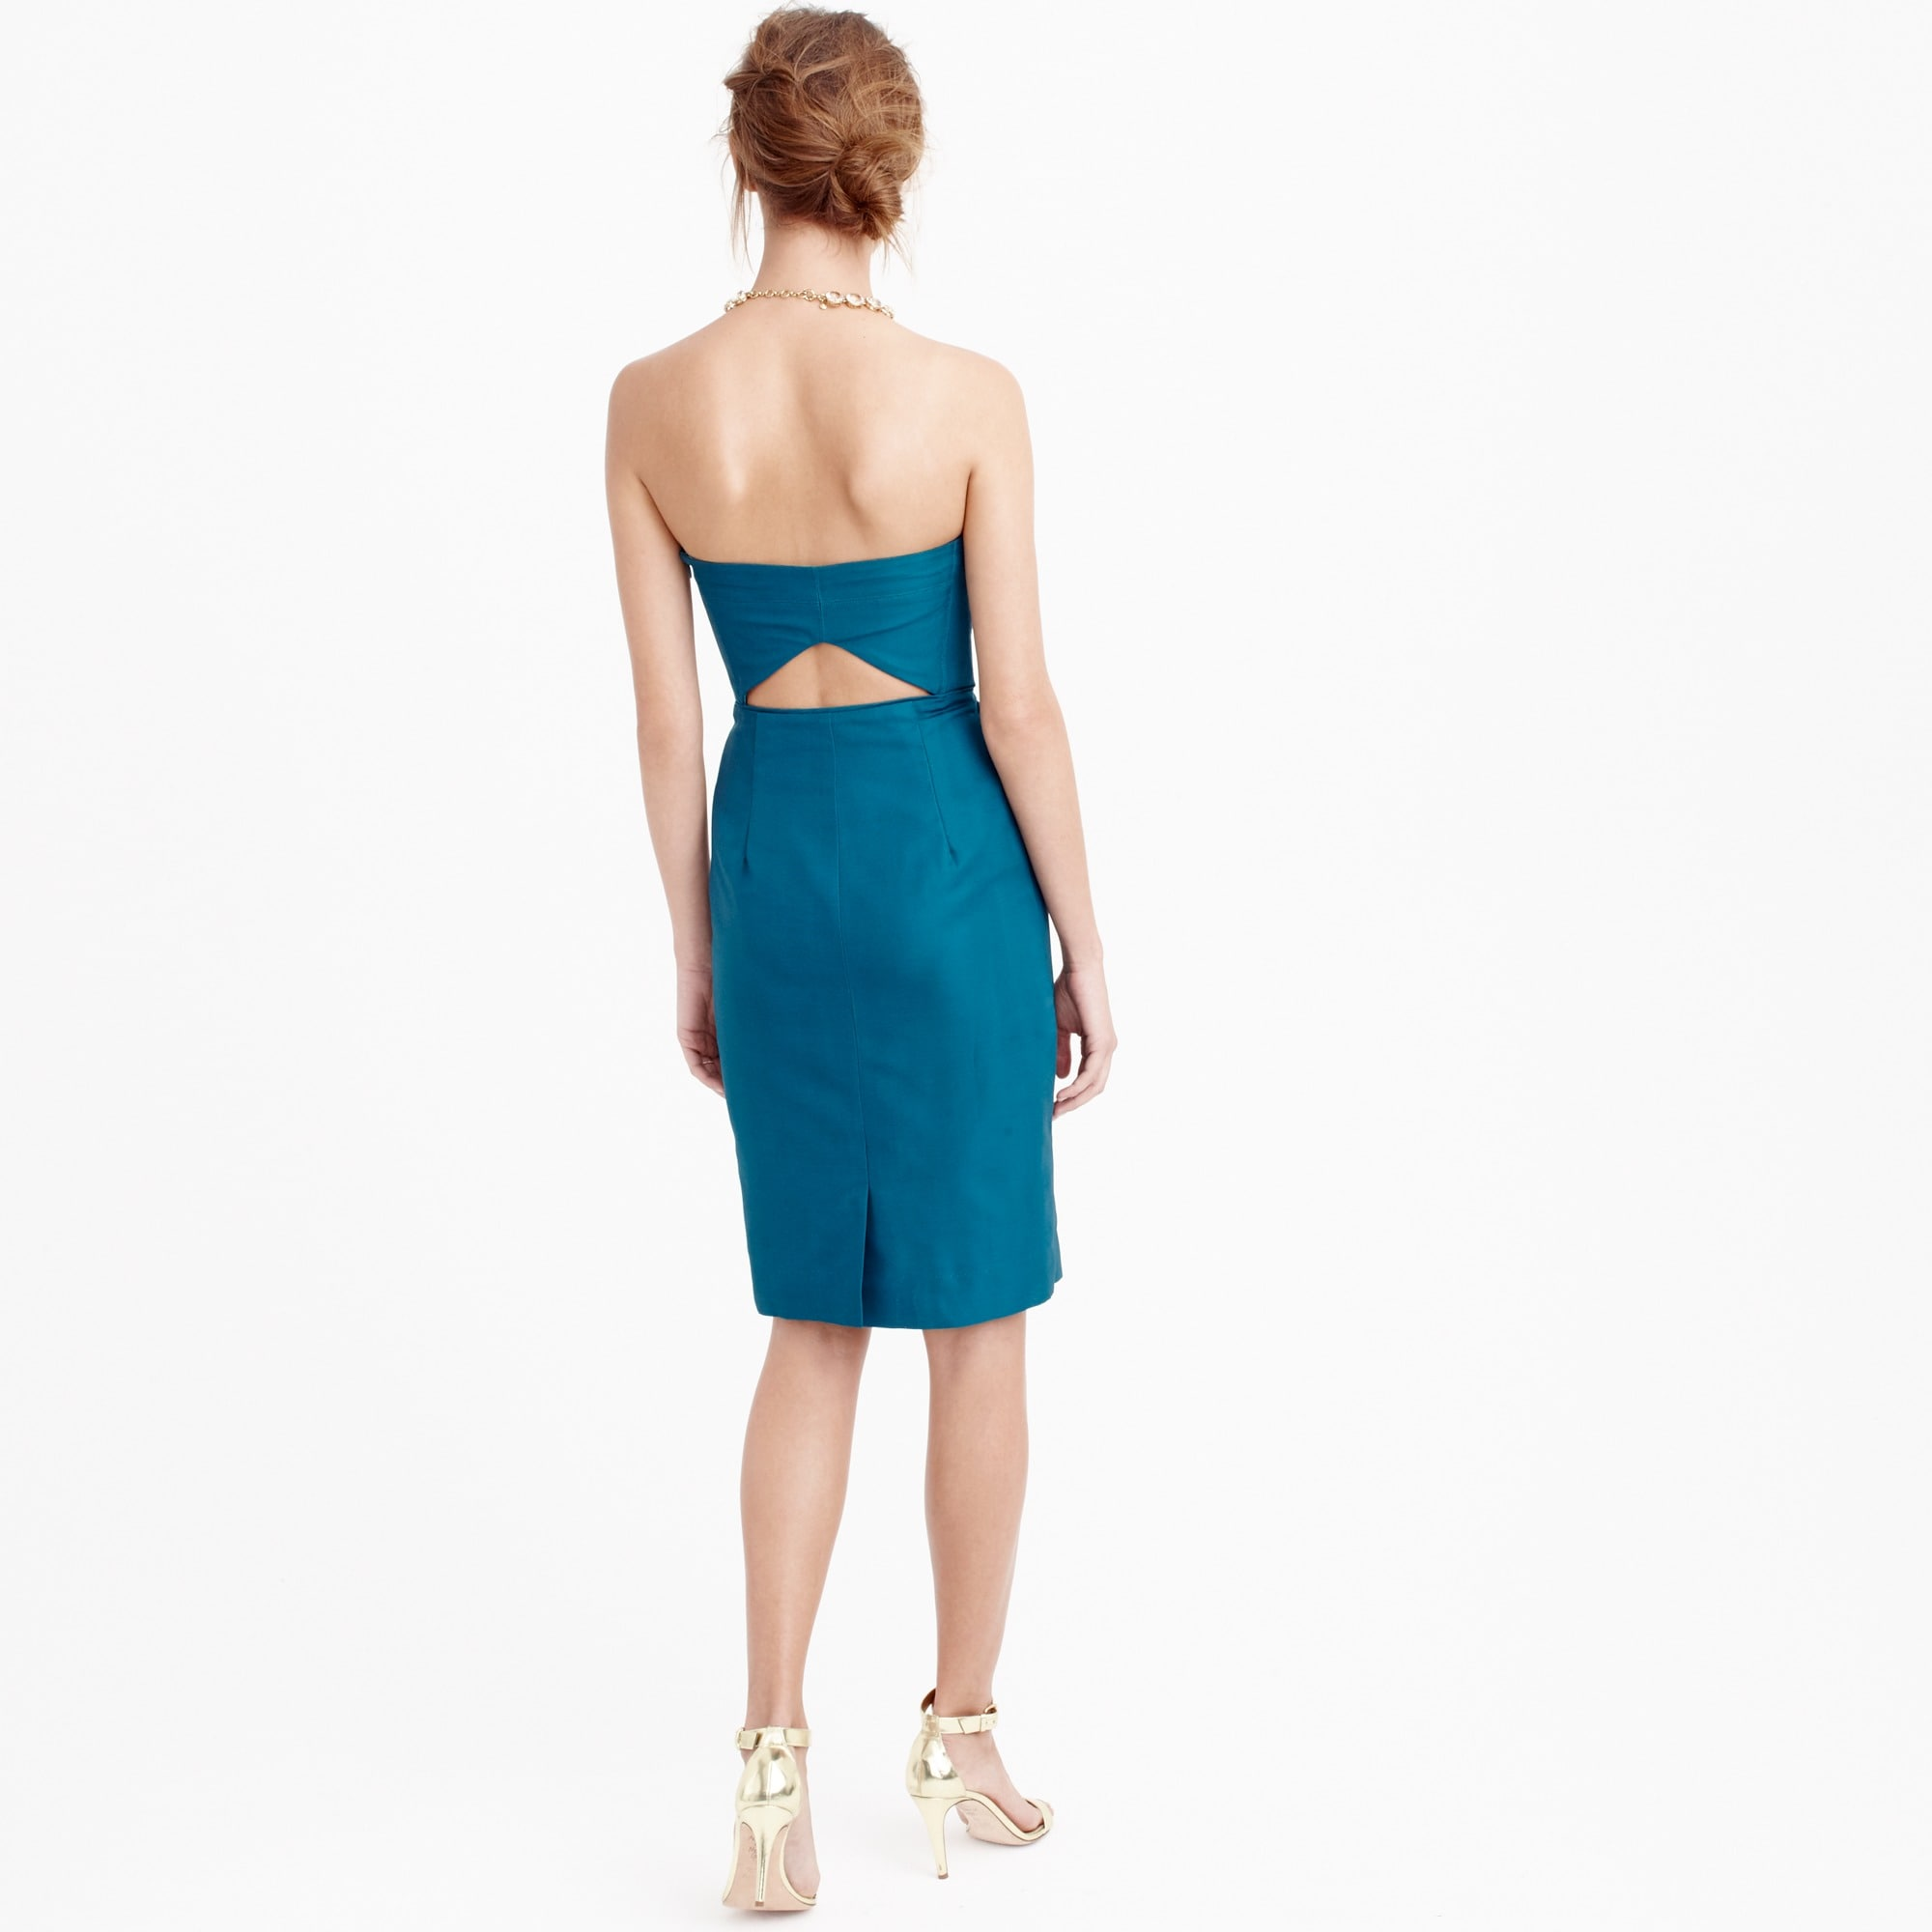 Image 3 for Rory strapless dress in classic faille